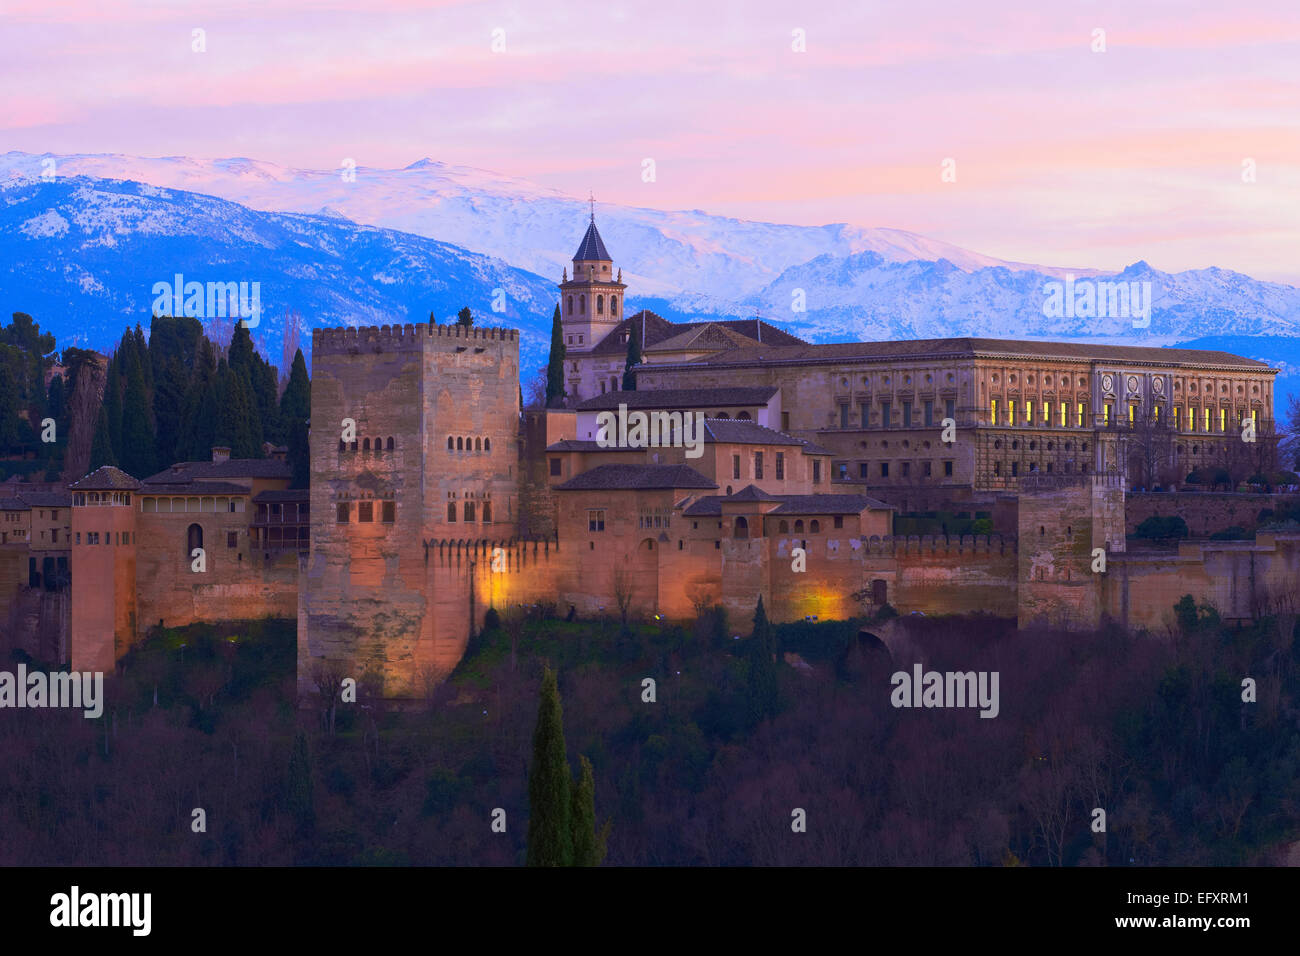 Alhambra, UNESCO World Heritage Site,Sierra Nevada and la Alhambra at Dusk, Granada, Andalusia, Spain - Stock Image